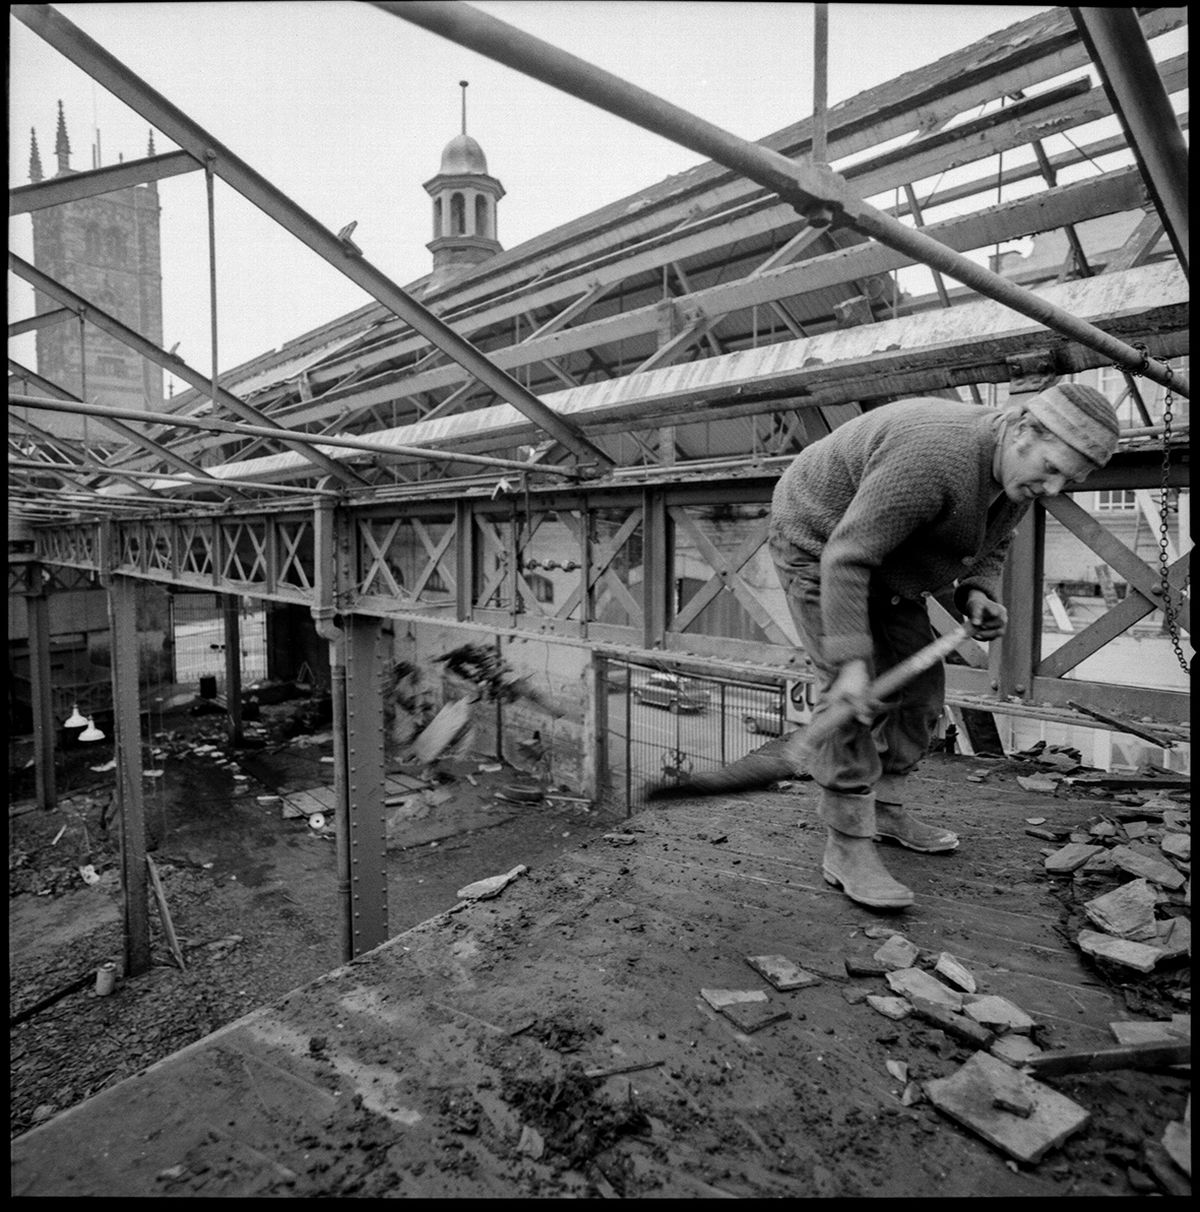 George captured one of the demolition men shovelling rubble from just beneath the roof beams